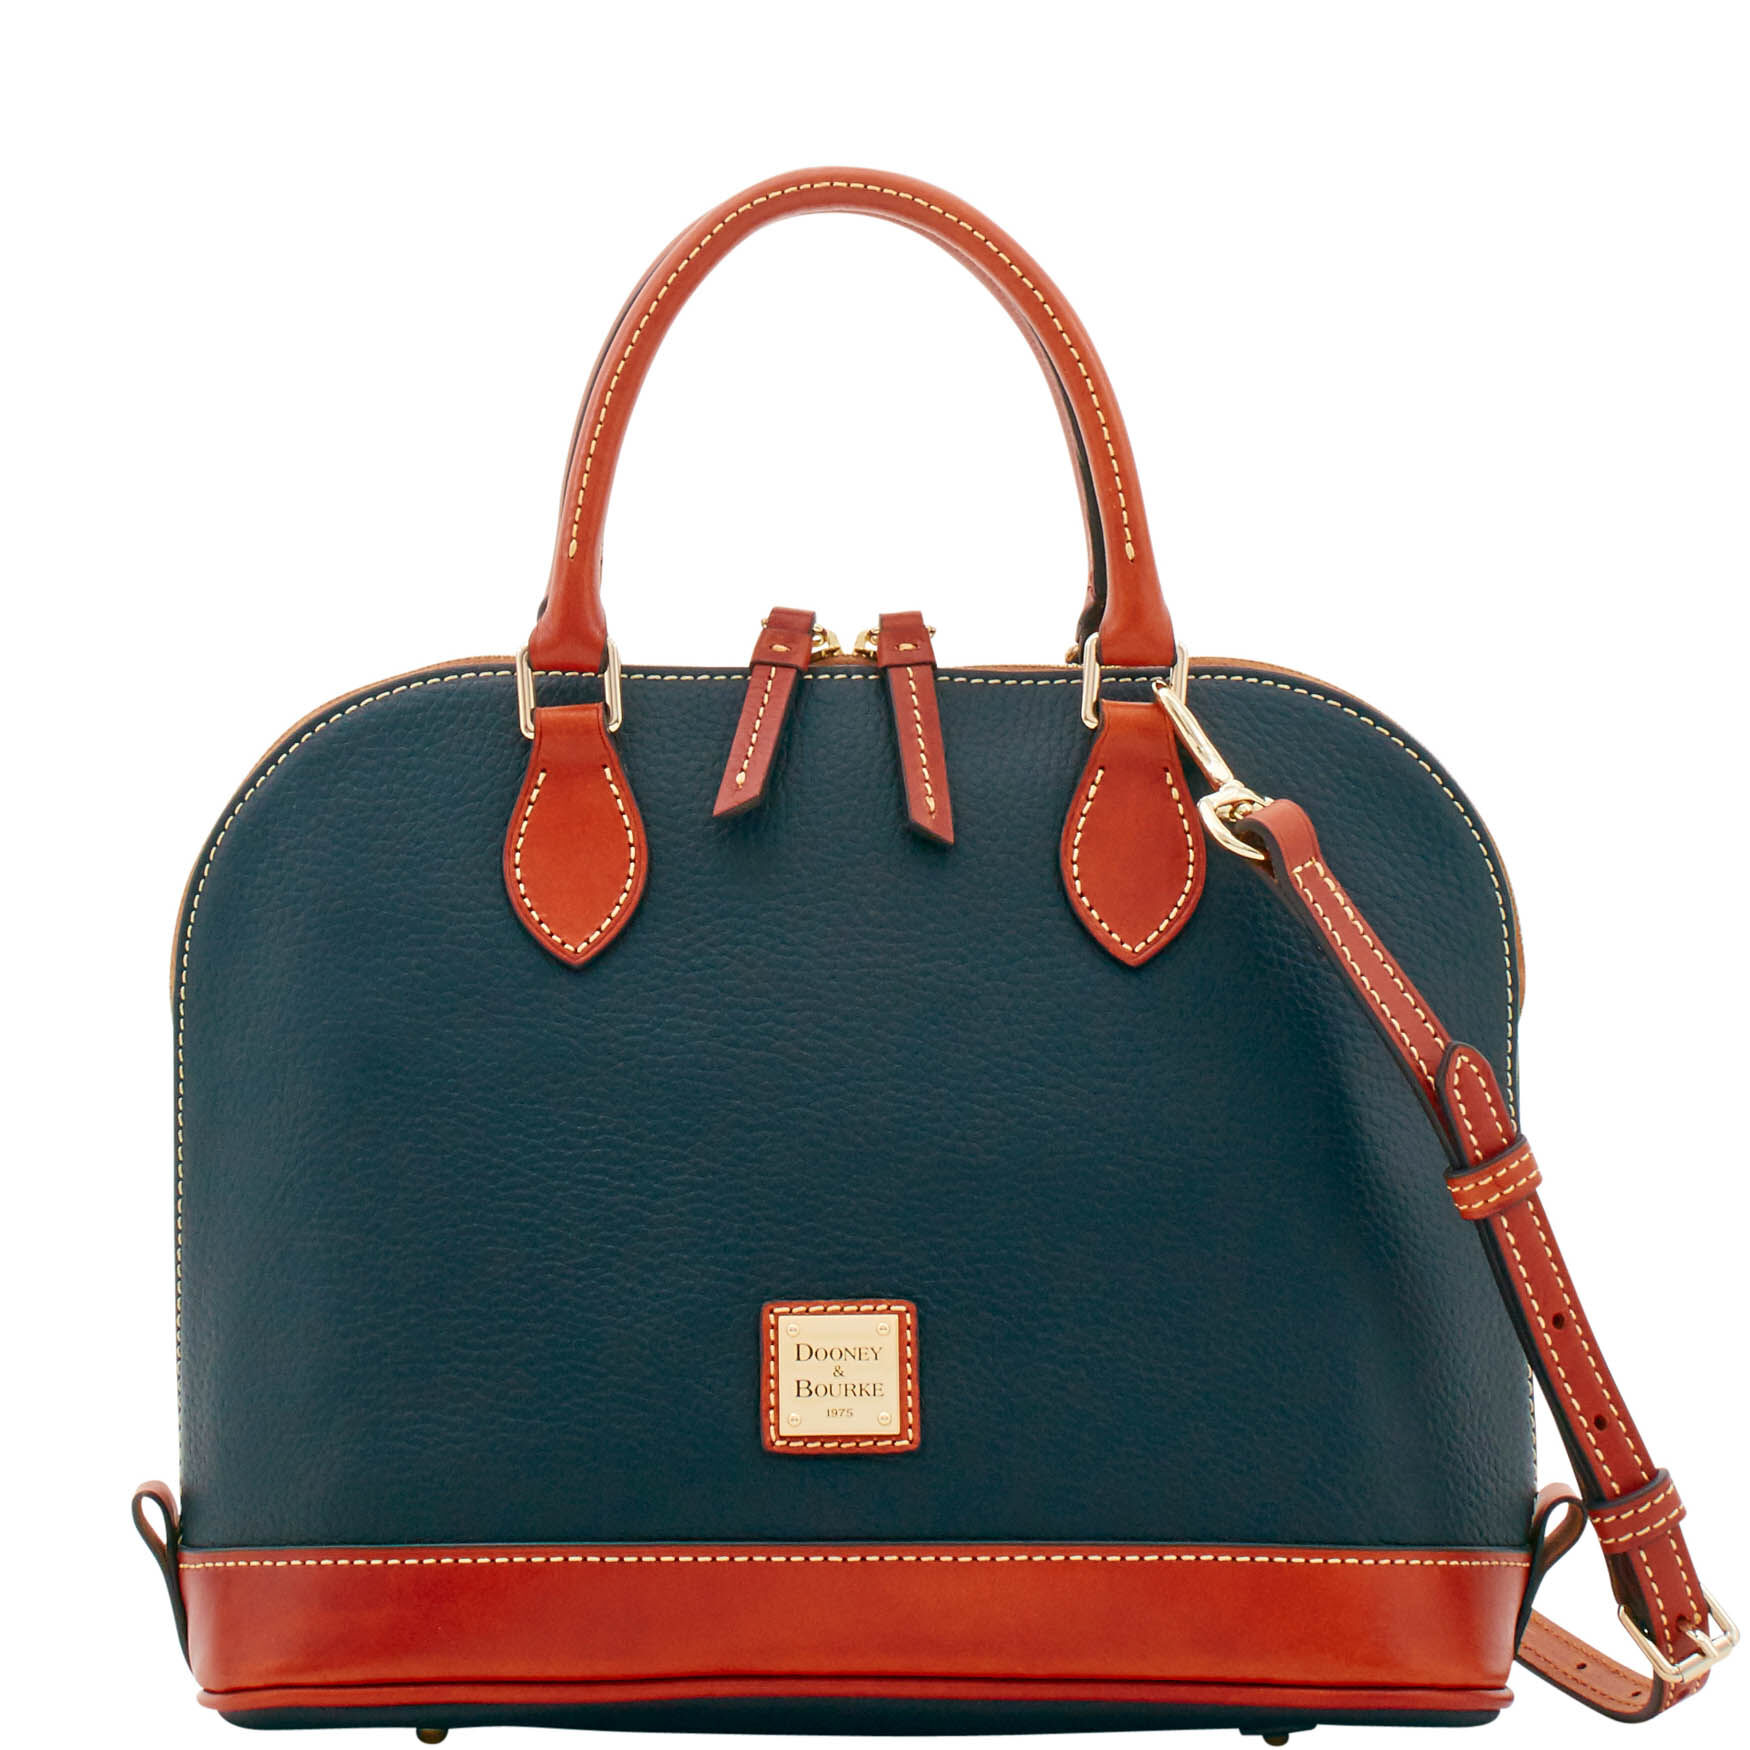 490a8b2b67 Sale Bags And Accessories Dooney   Bourke